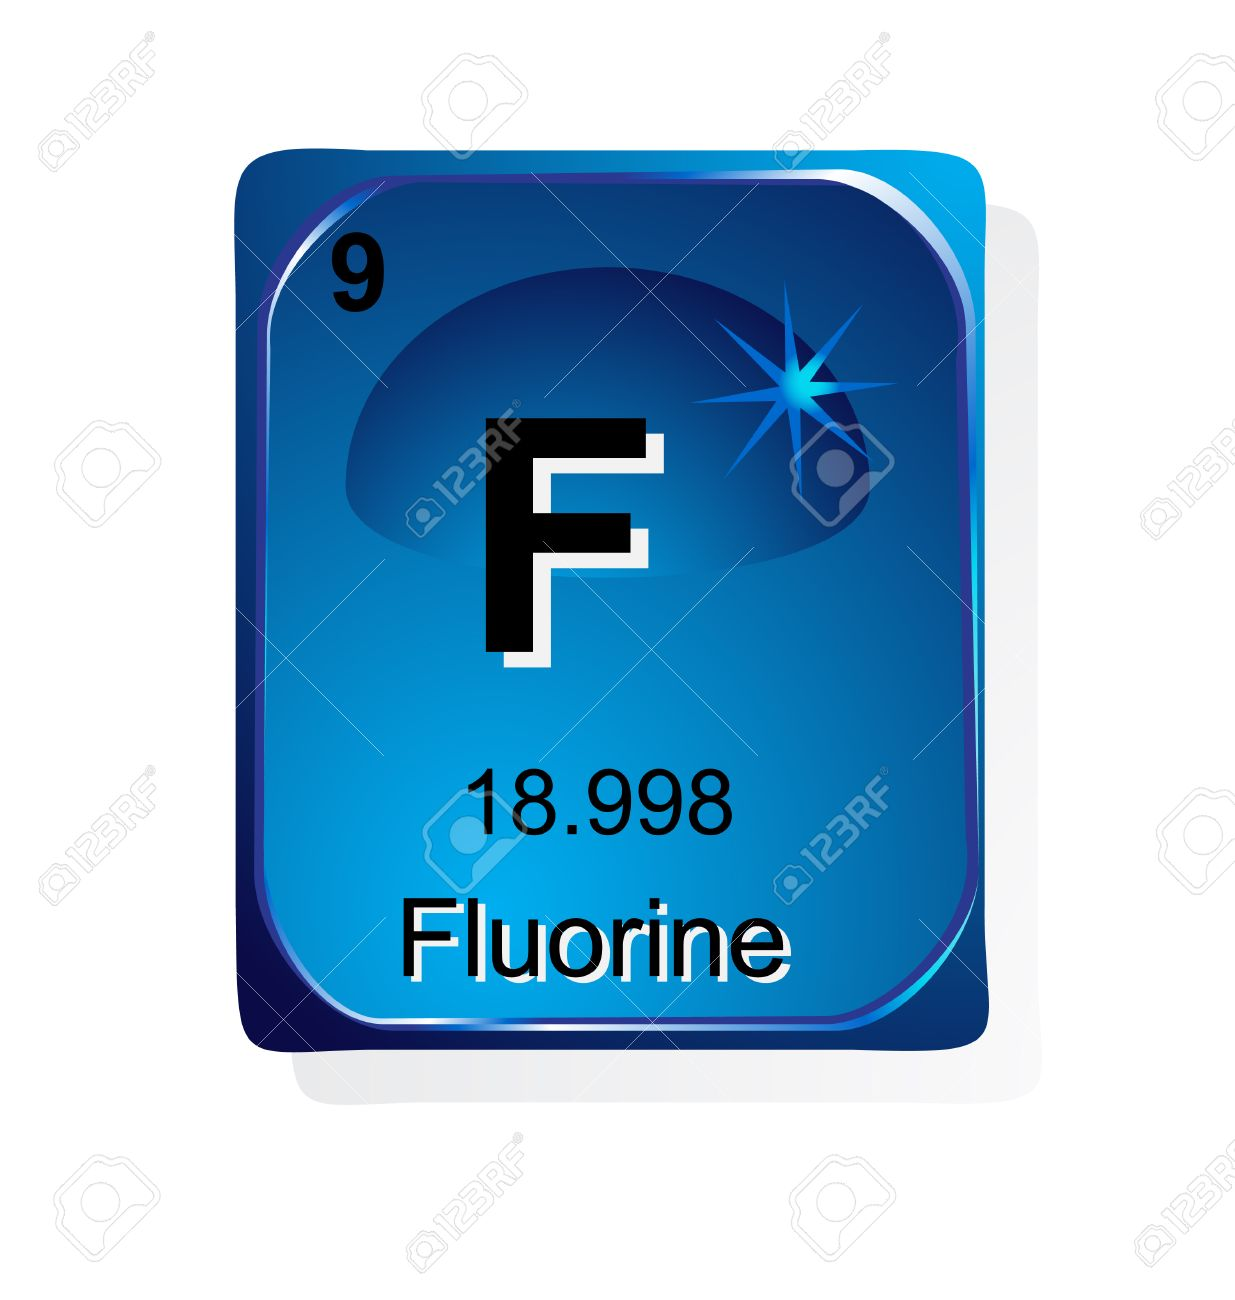 Fluorine symbol periodic table image collections periodic table barium symbol periodic table images periodic table images fluorine chemical element with atomic number symbol and gamestrikefo Choice Image